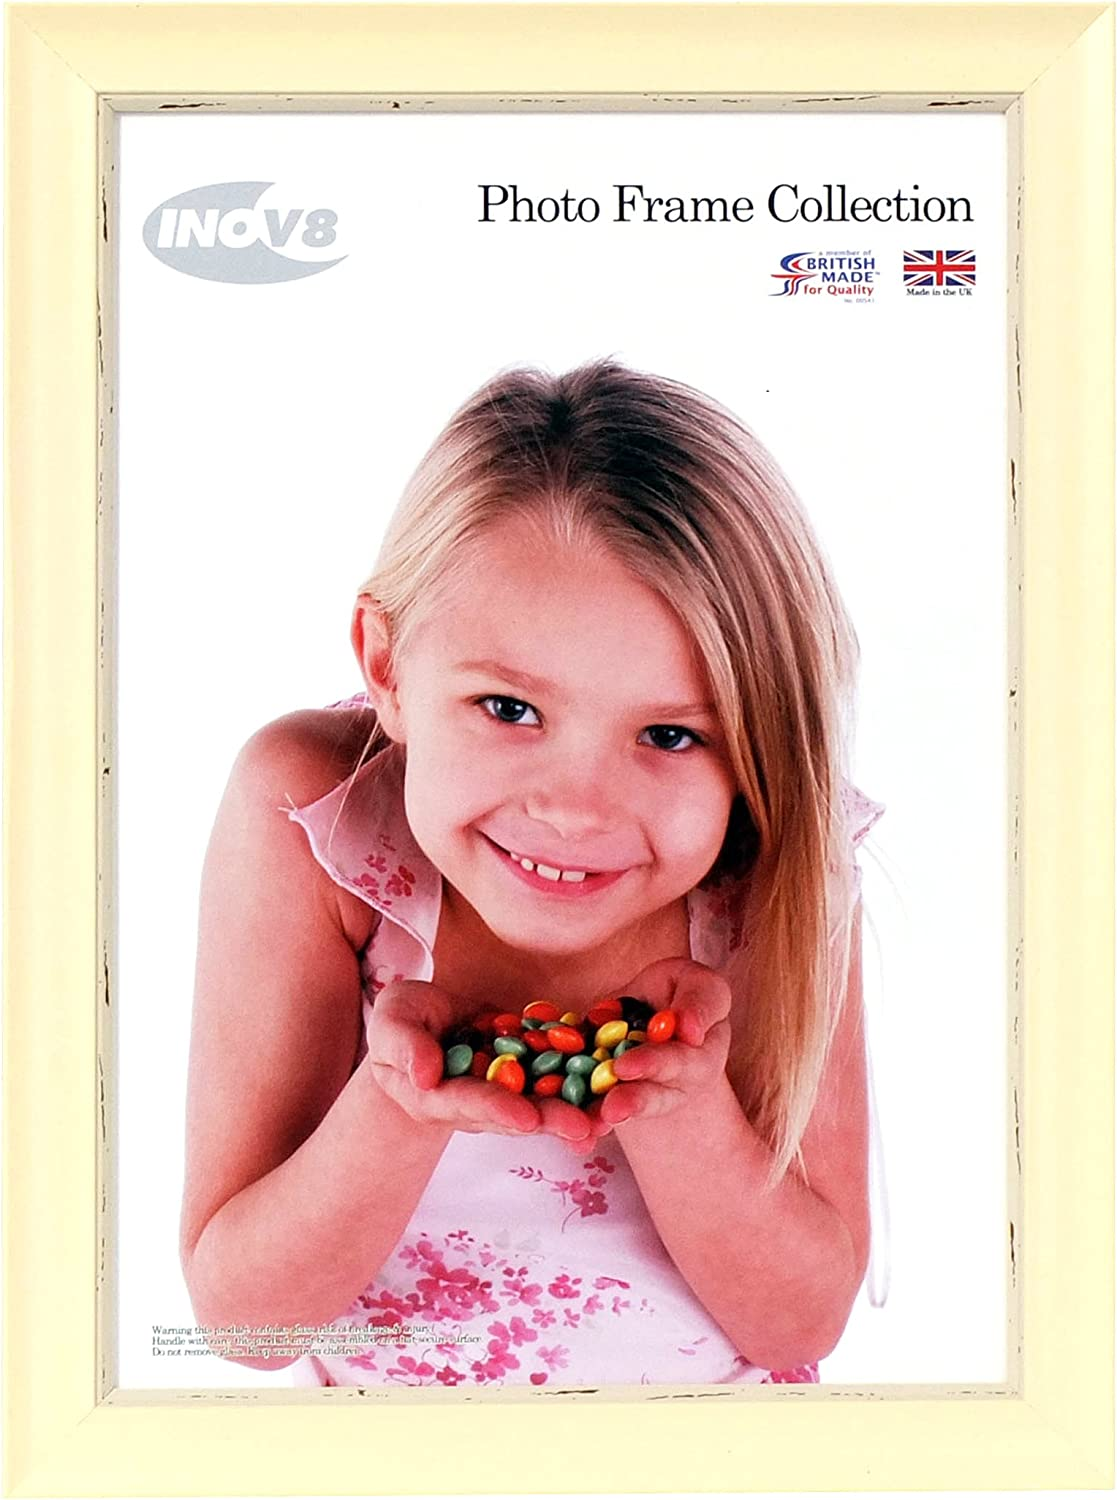 White Wash Inov8 British Made Traditional Picture//Photo Frame 6x6-Inch Small Photo Frame